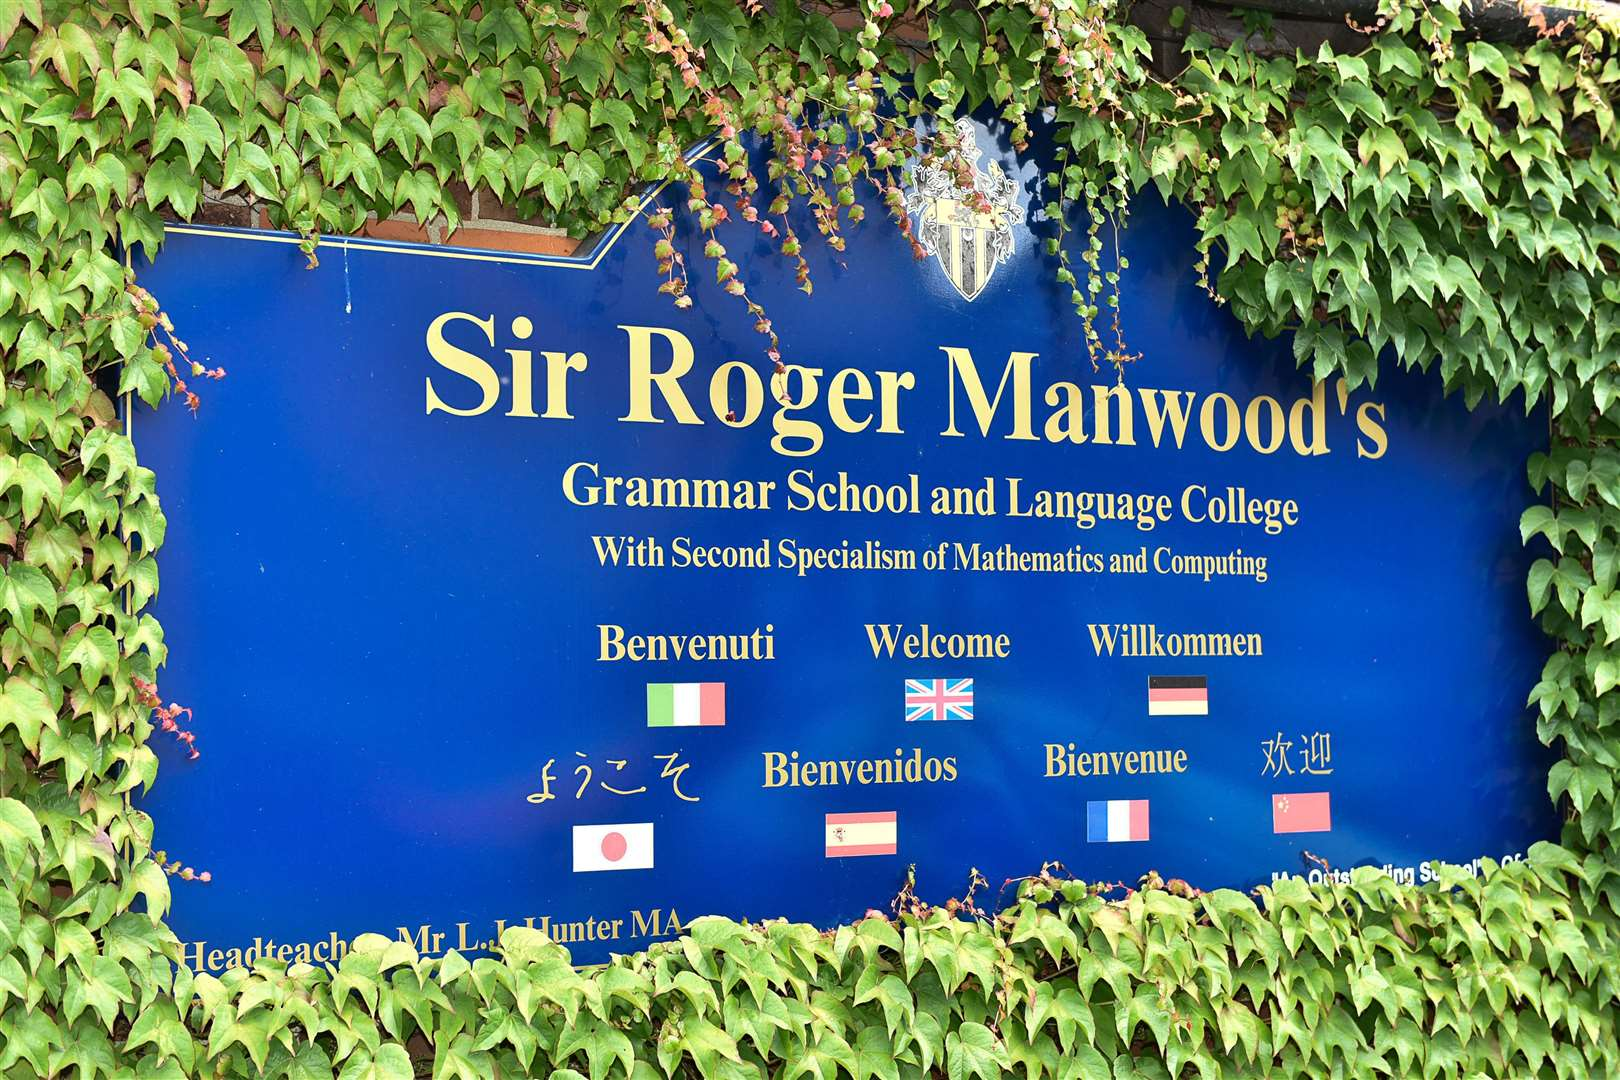 Sir Roger Manwood's school will shut for the week while the event is staged